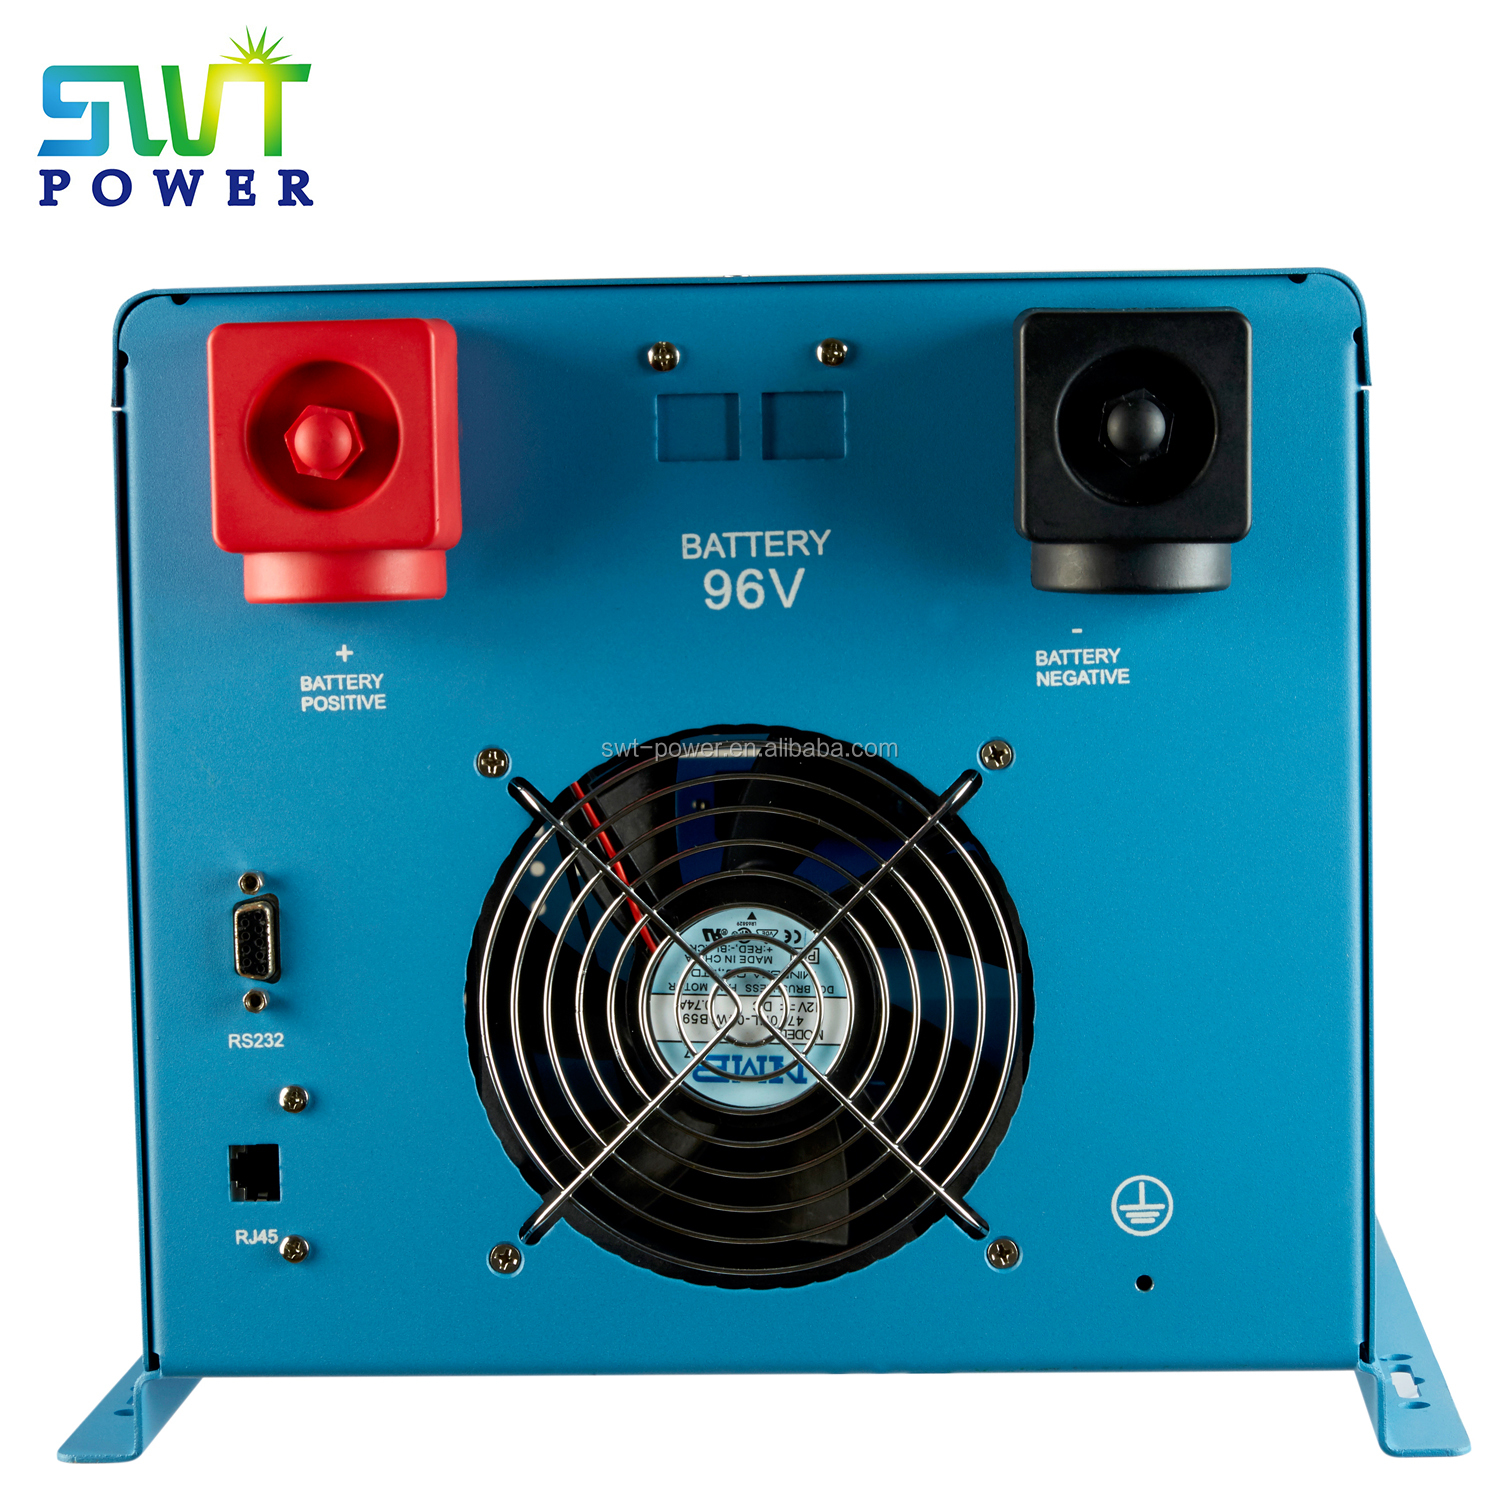 Pure Sine Wave On/off Grid Solar Inverter Hybrid with Batter Backup 1KW 10KW Low Frequency for Home System